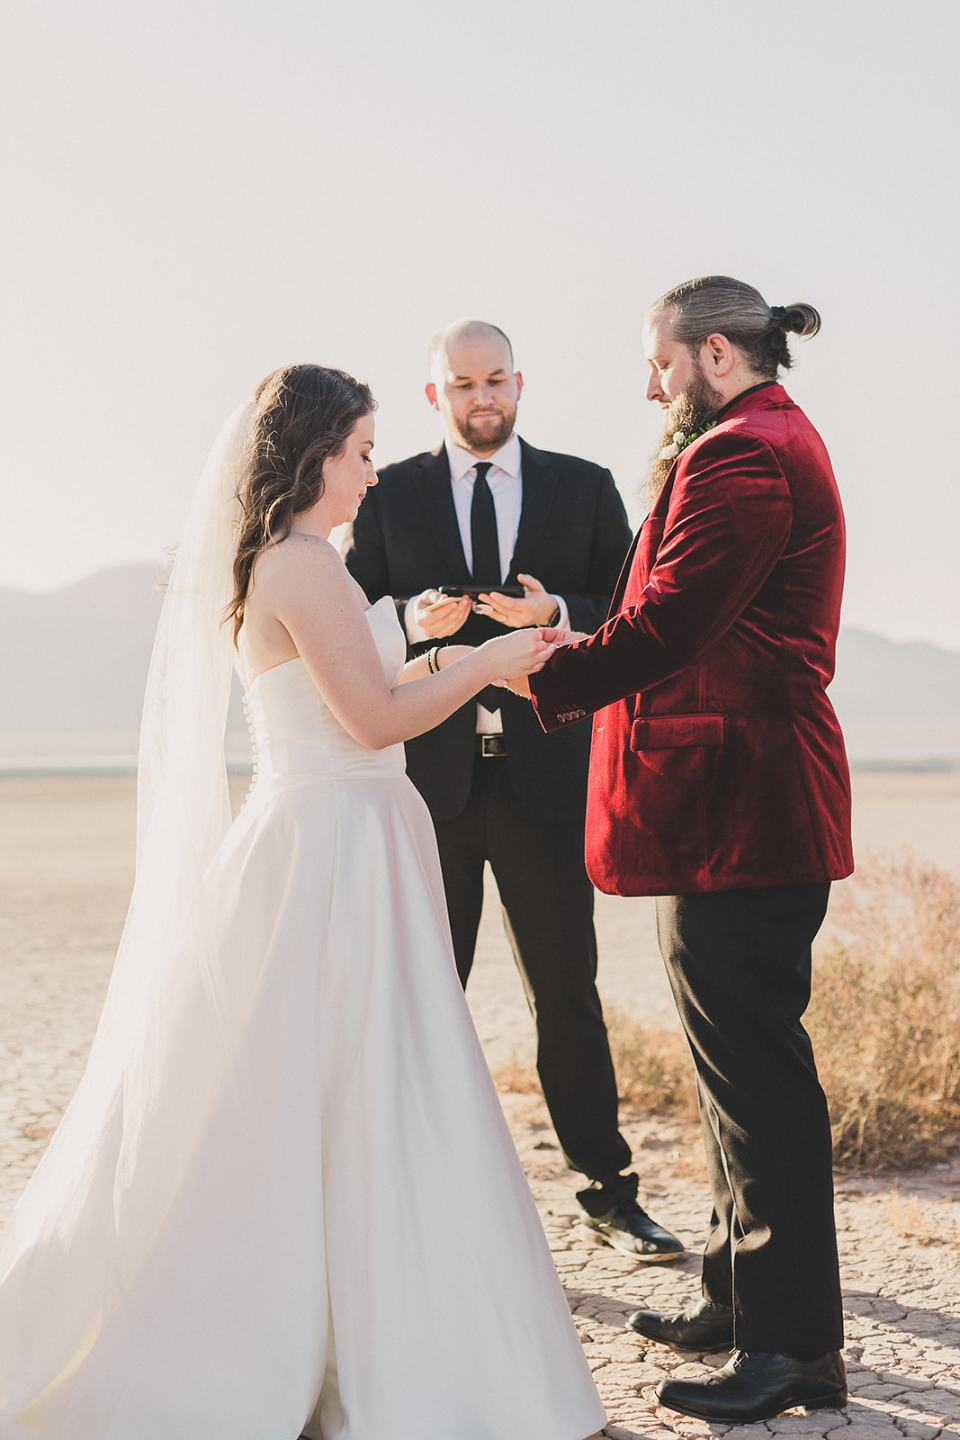 bride and groom exchange vows in Las Vegas desert